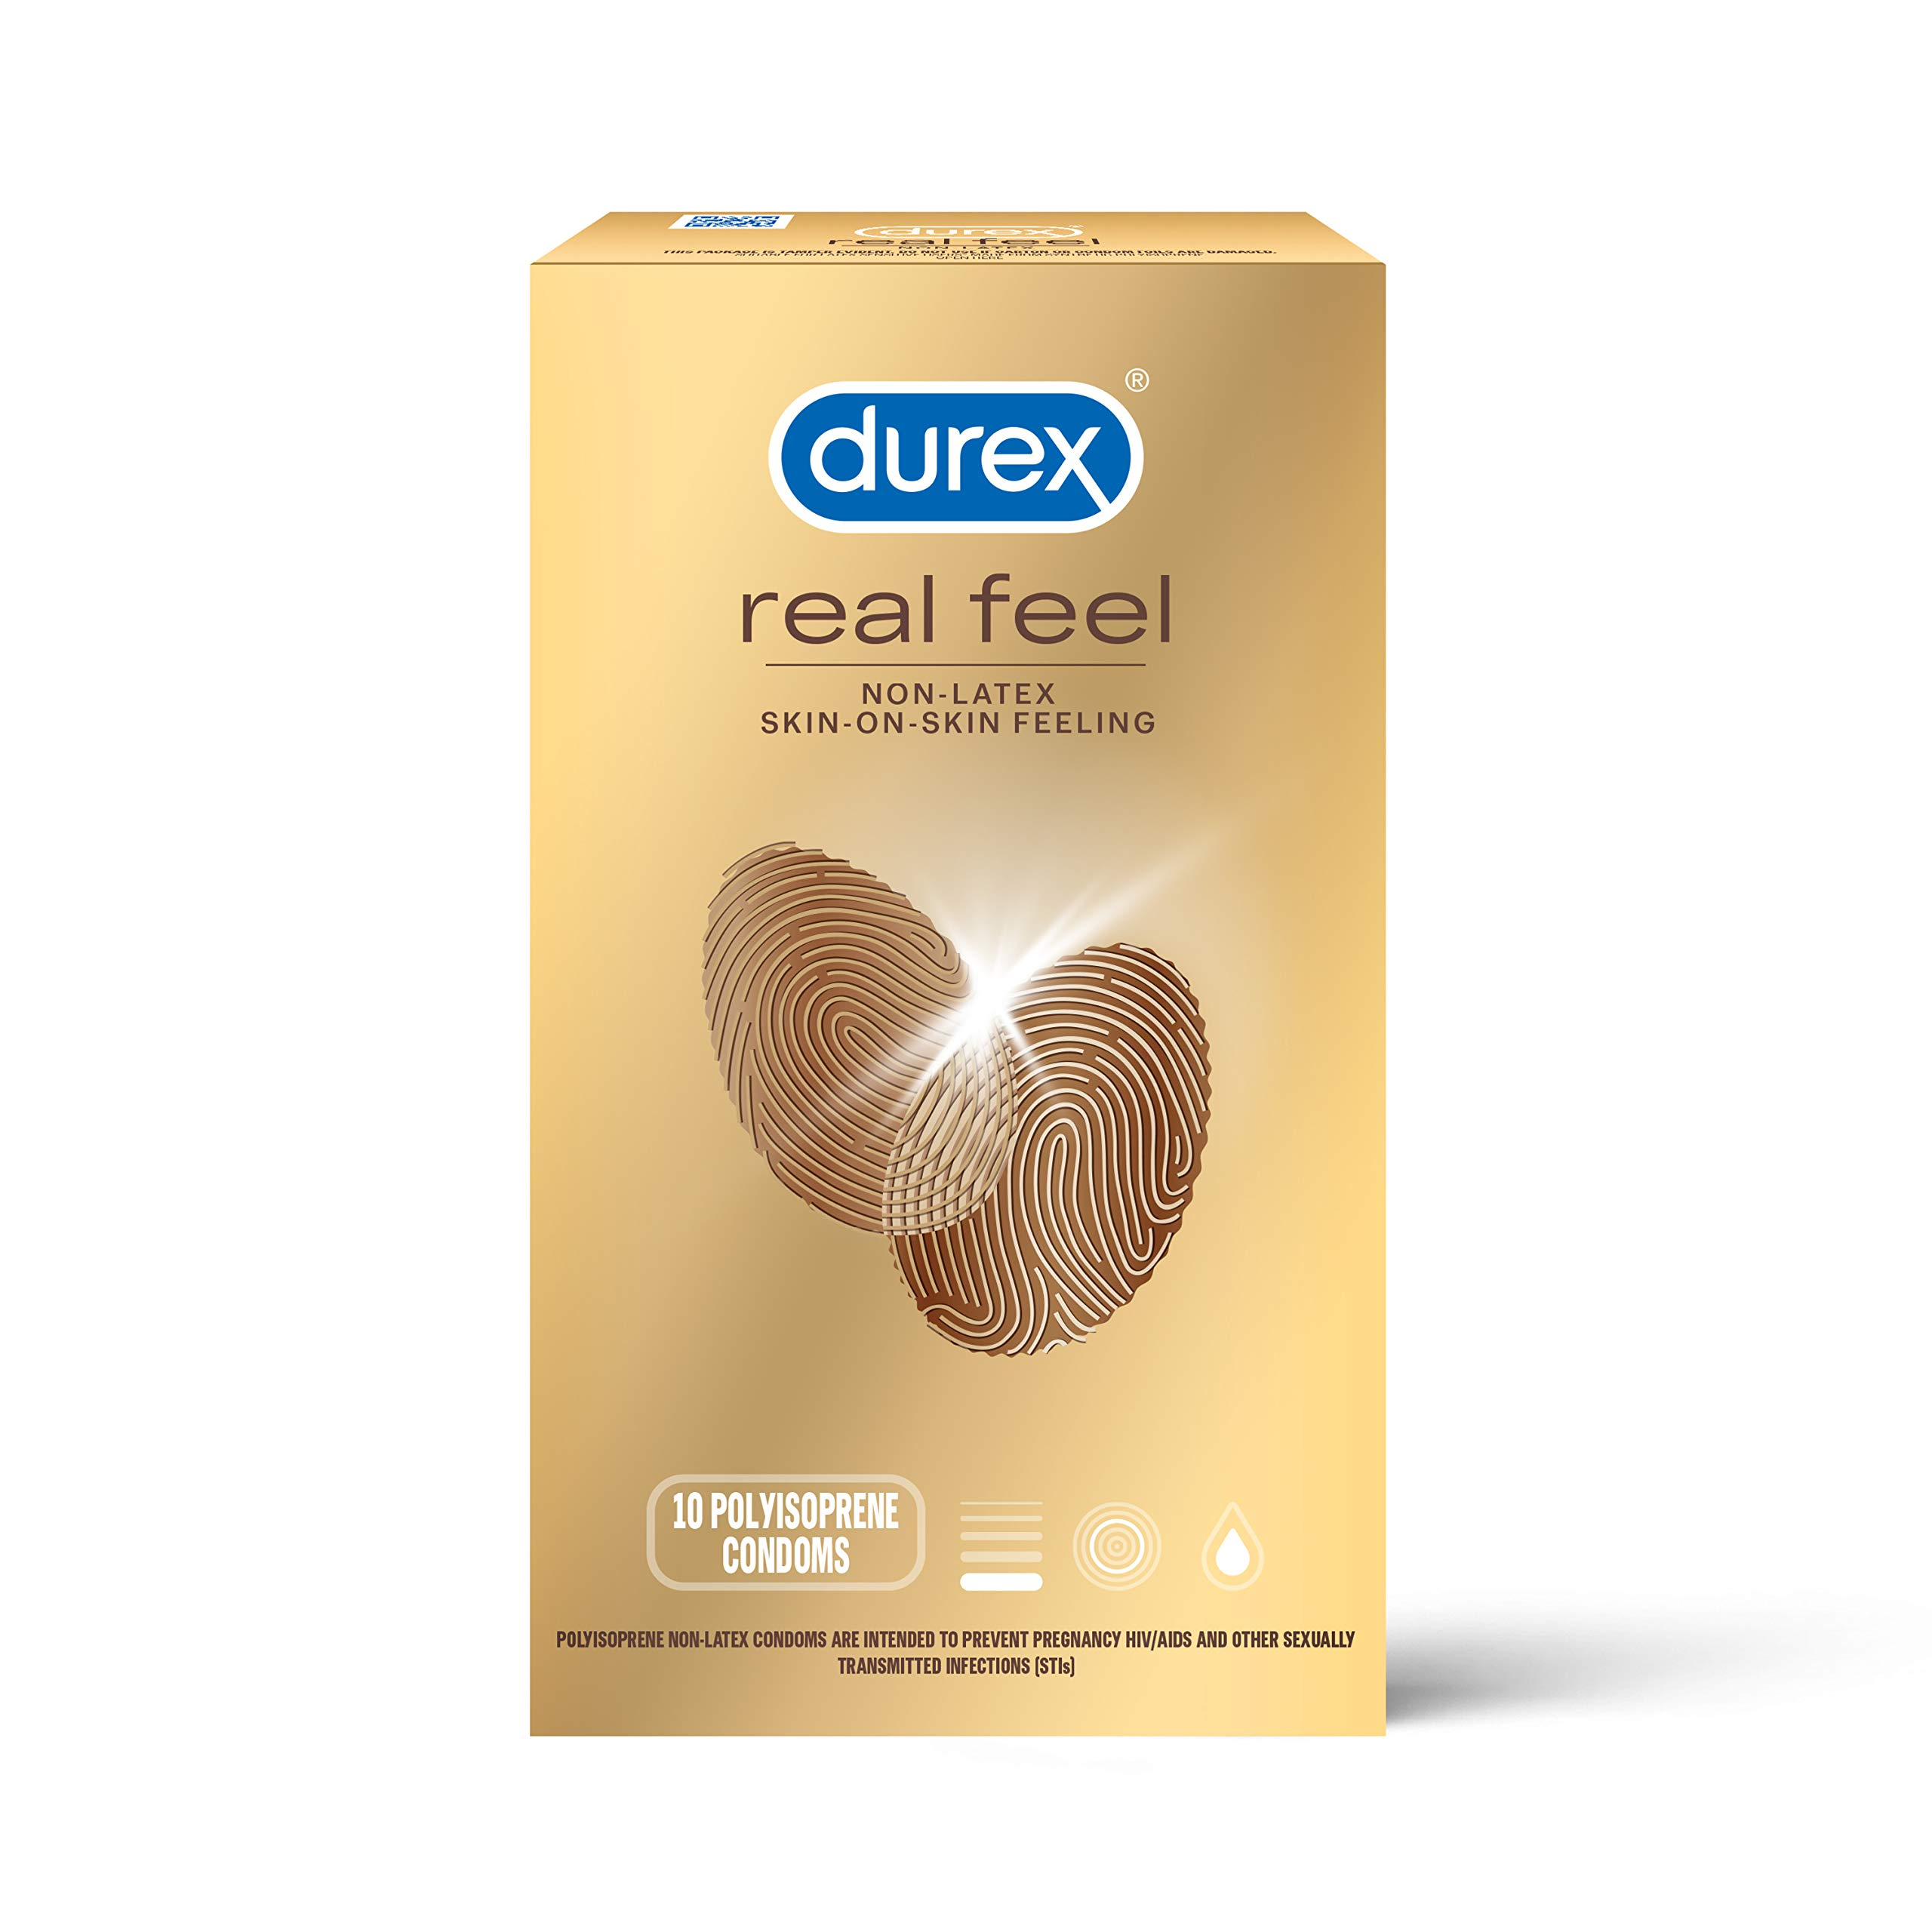 Condoms for Sex, Non Latex Durex Avanti Bare Real Feel Lubricated Condoms, 10 Count, Non Latex Condoms for Men with Natural Skin on Skin Feeling, FSA & HSA Eligible